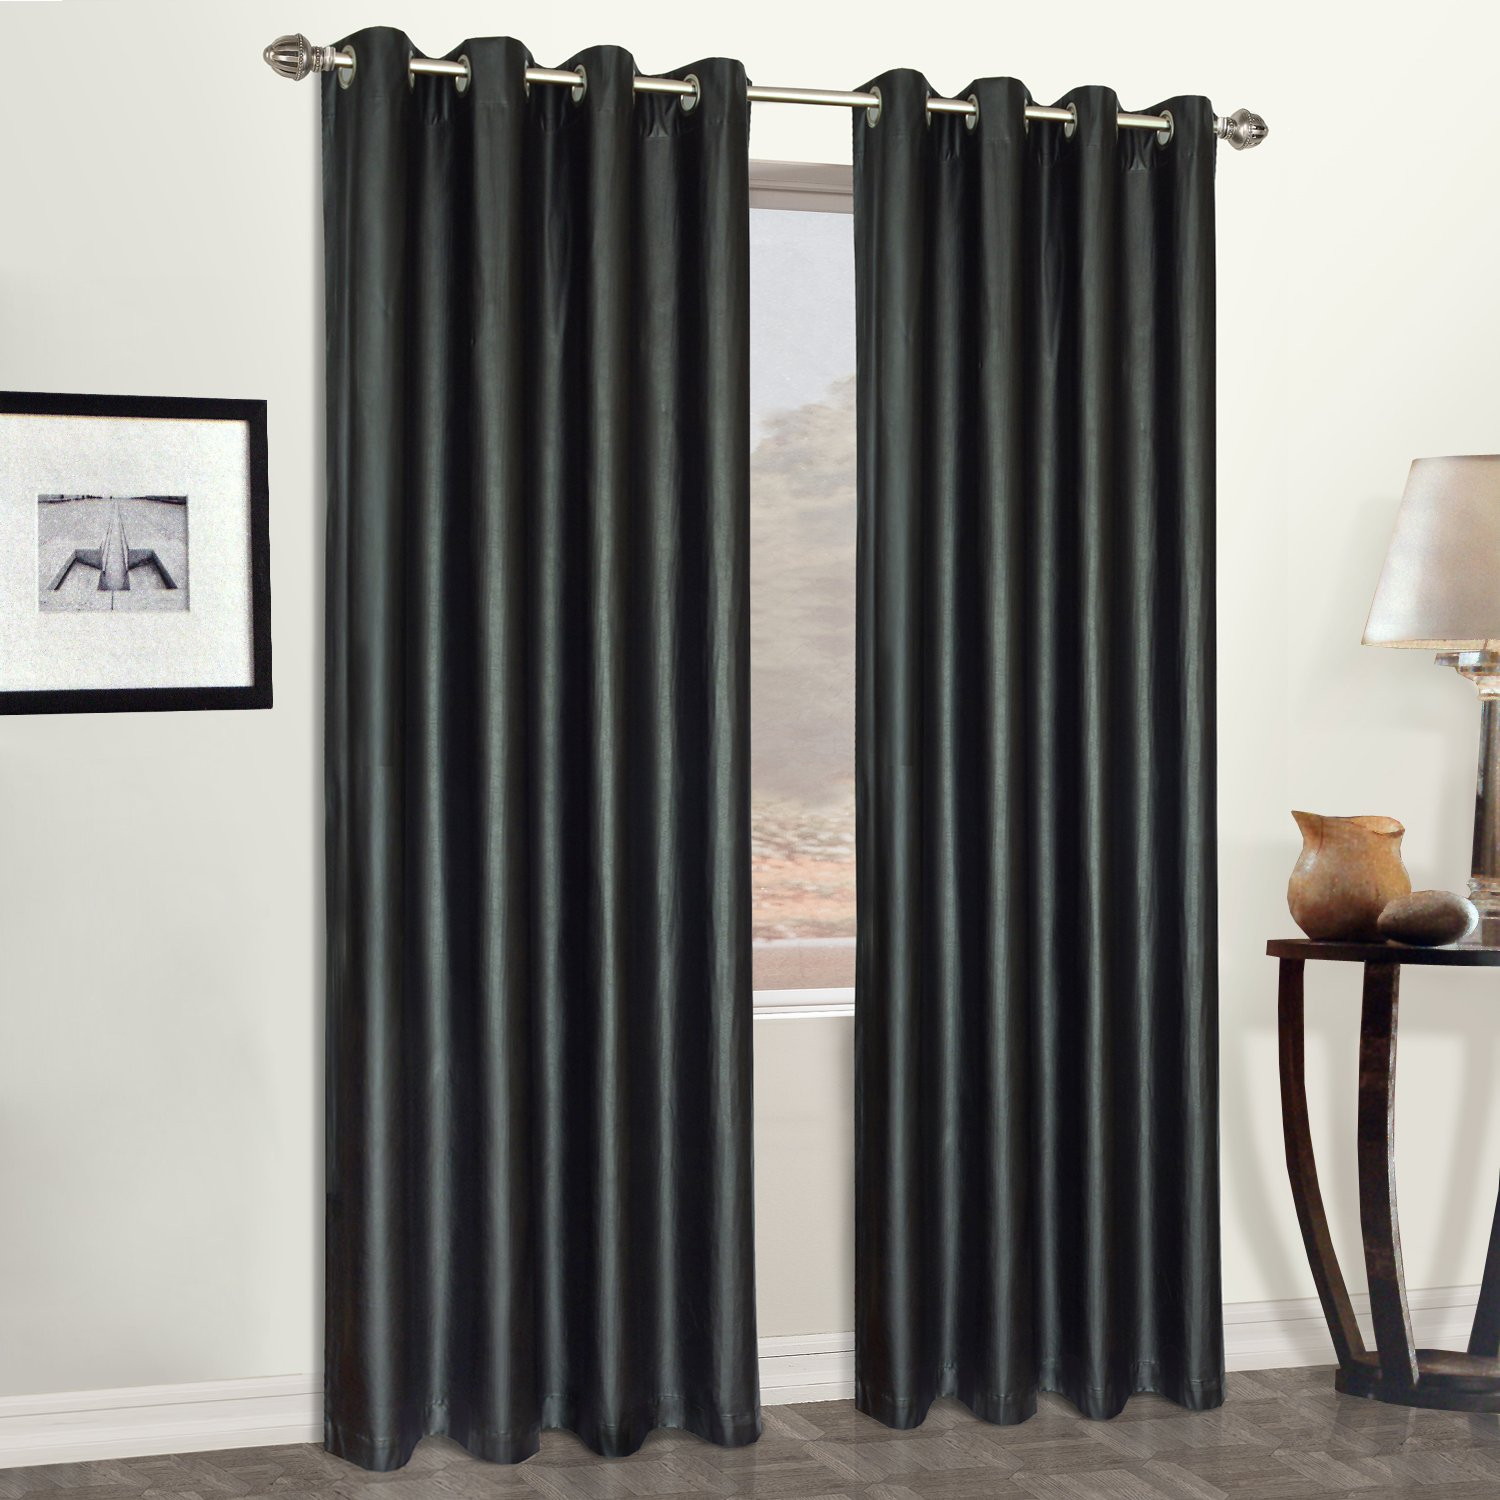 living luxe inches with grommet traditional grey panels basics linen better decorating treatments window central curtain drapes grommets x park grand room homes top panel gardens